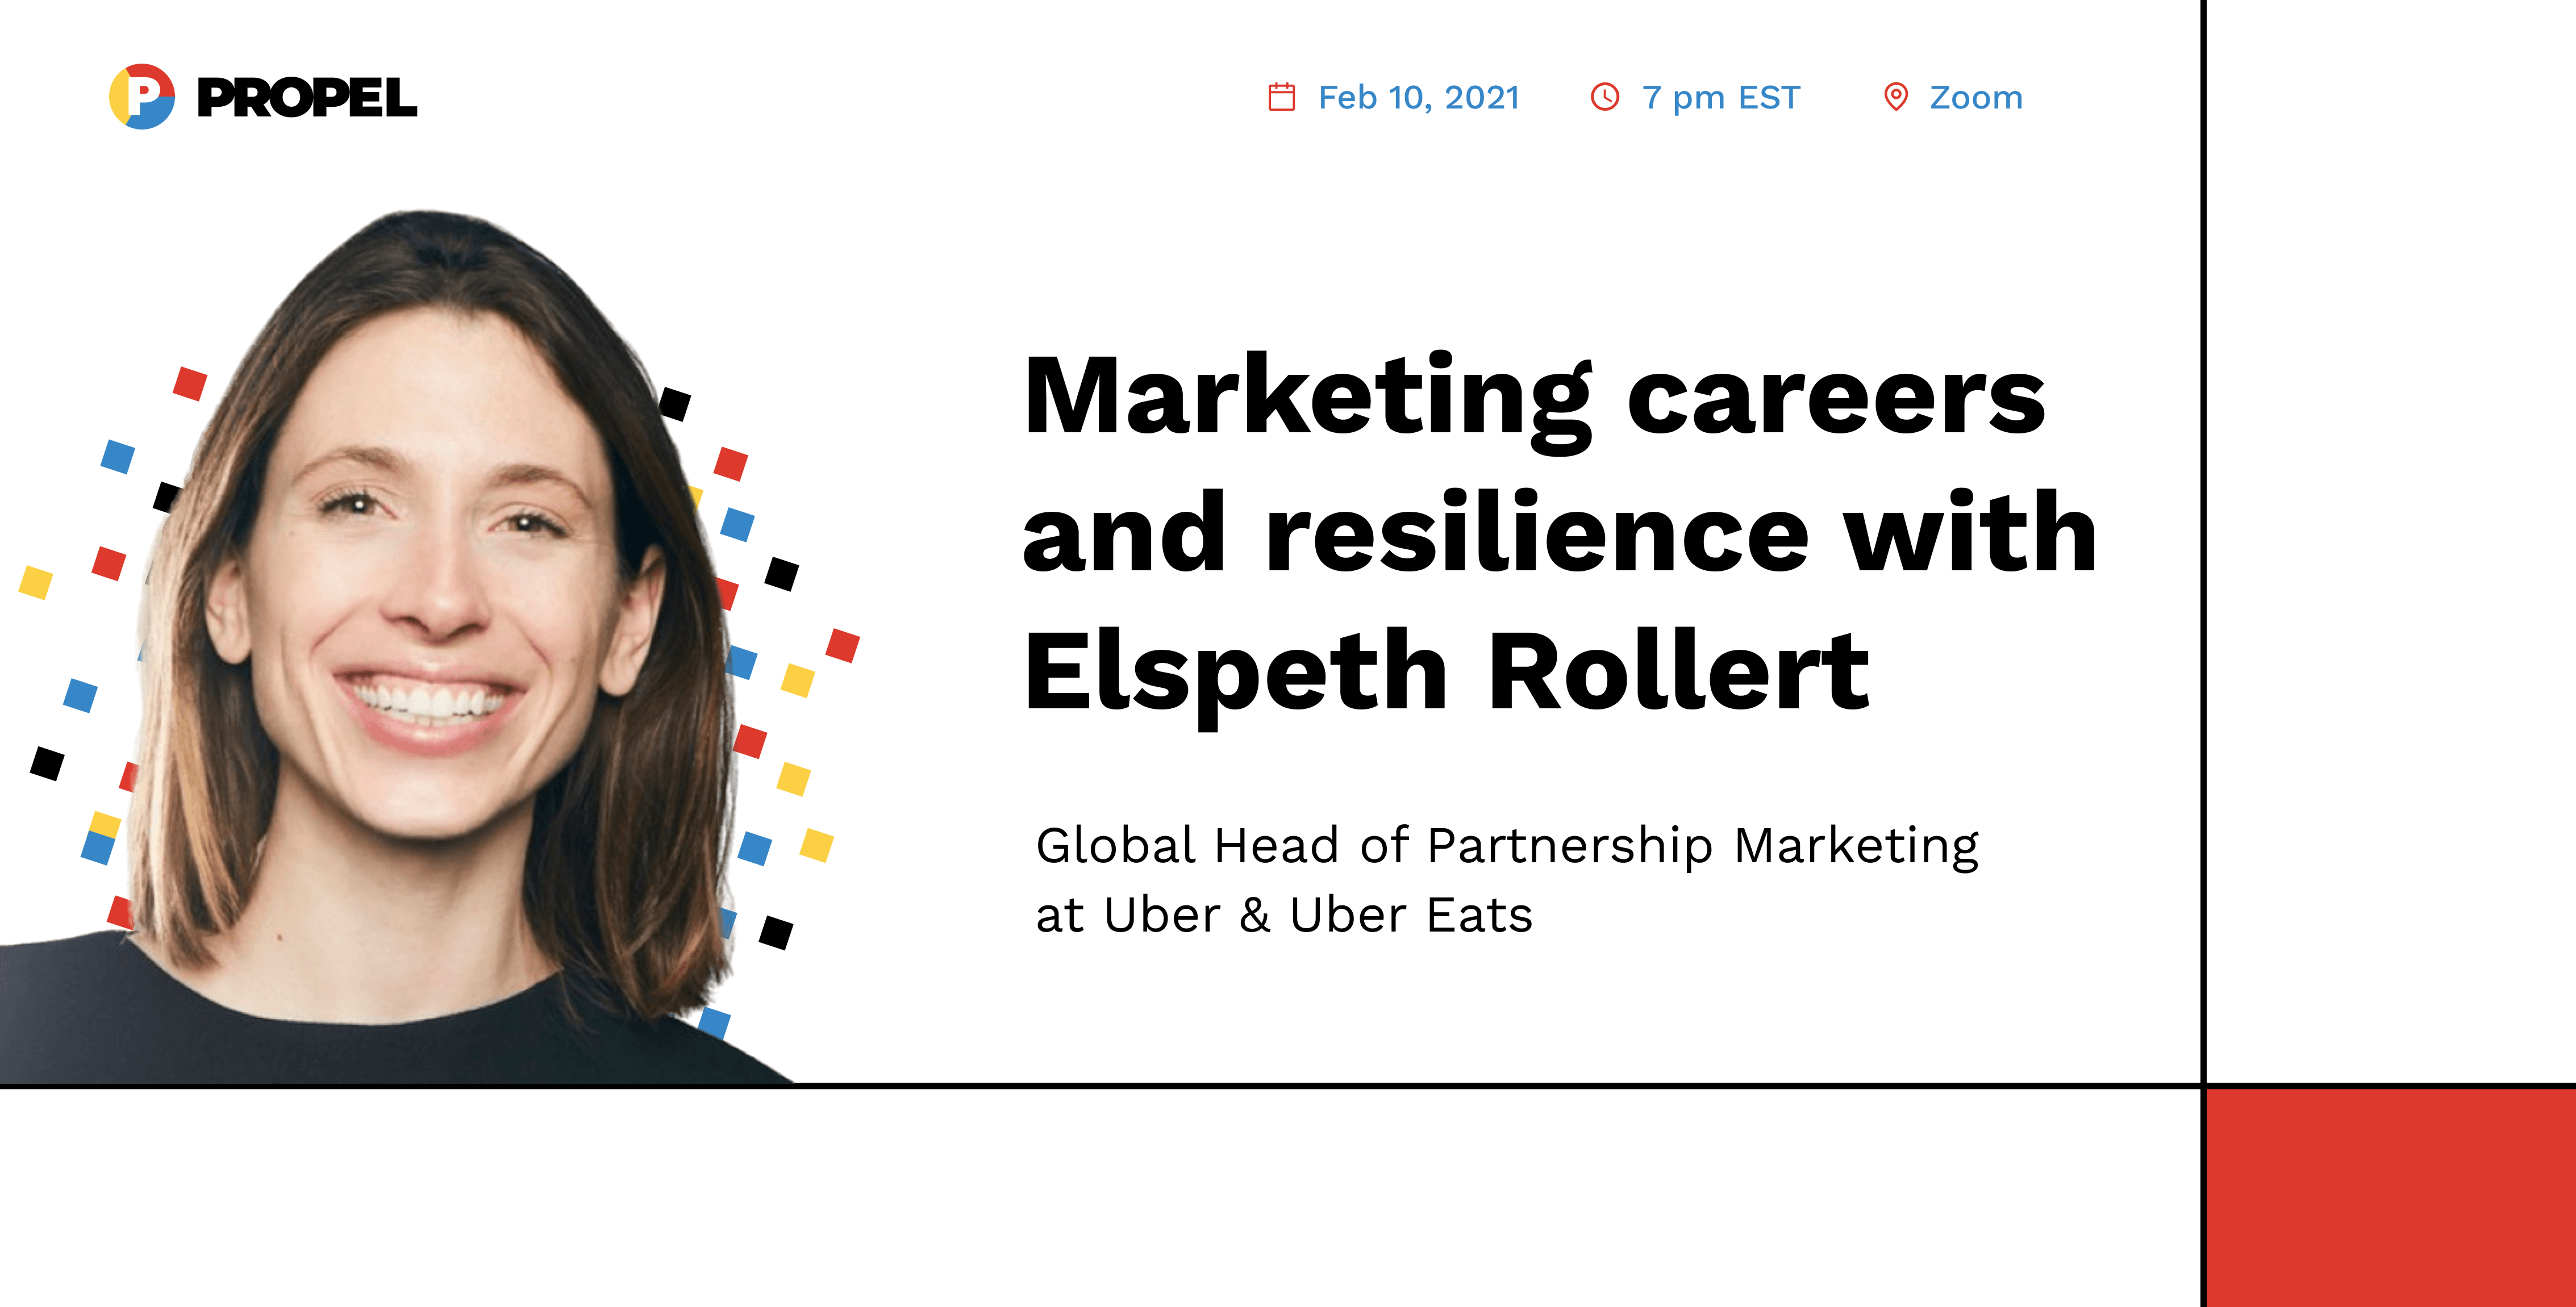 AMA and Networking with Elspeth Rollert, Global Head of Partnership Marketing at Uber Eats